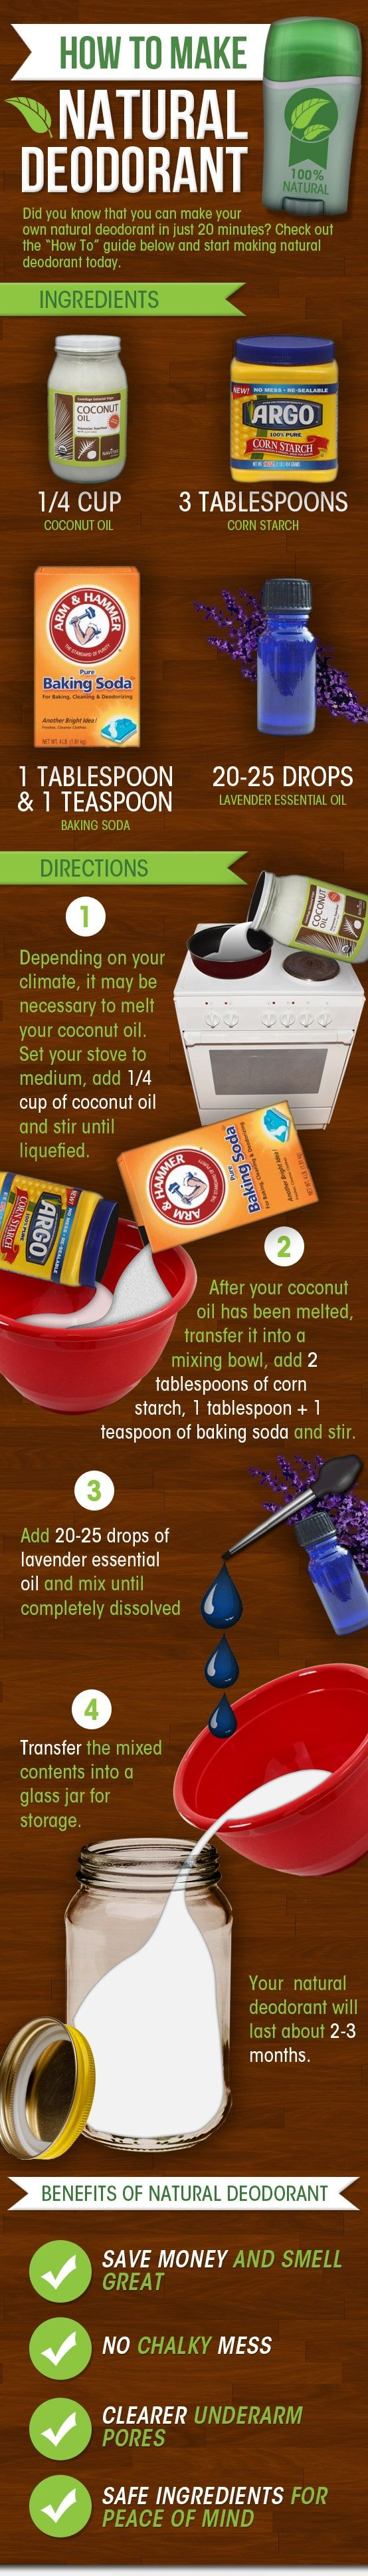 Homemade Natural Deodorant - worth a try. Put in an old deodorant container for easy use.